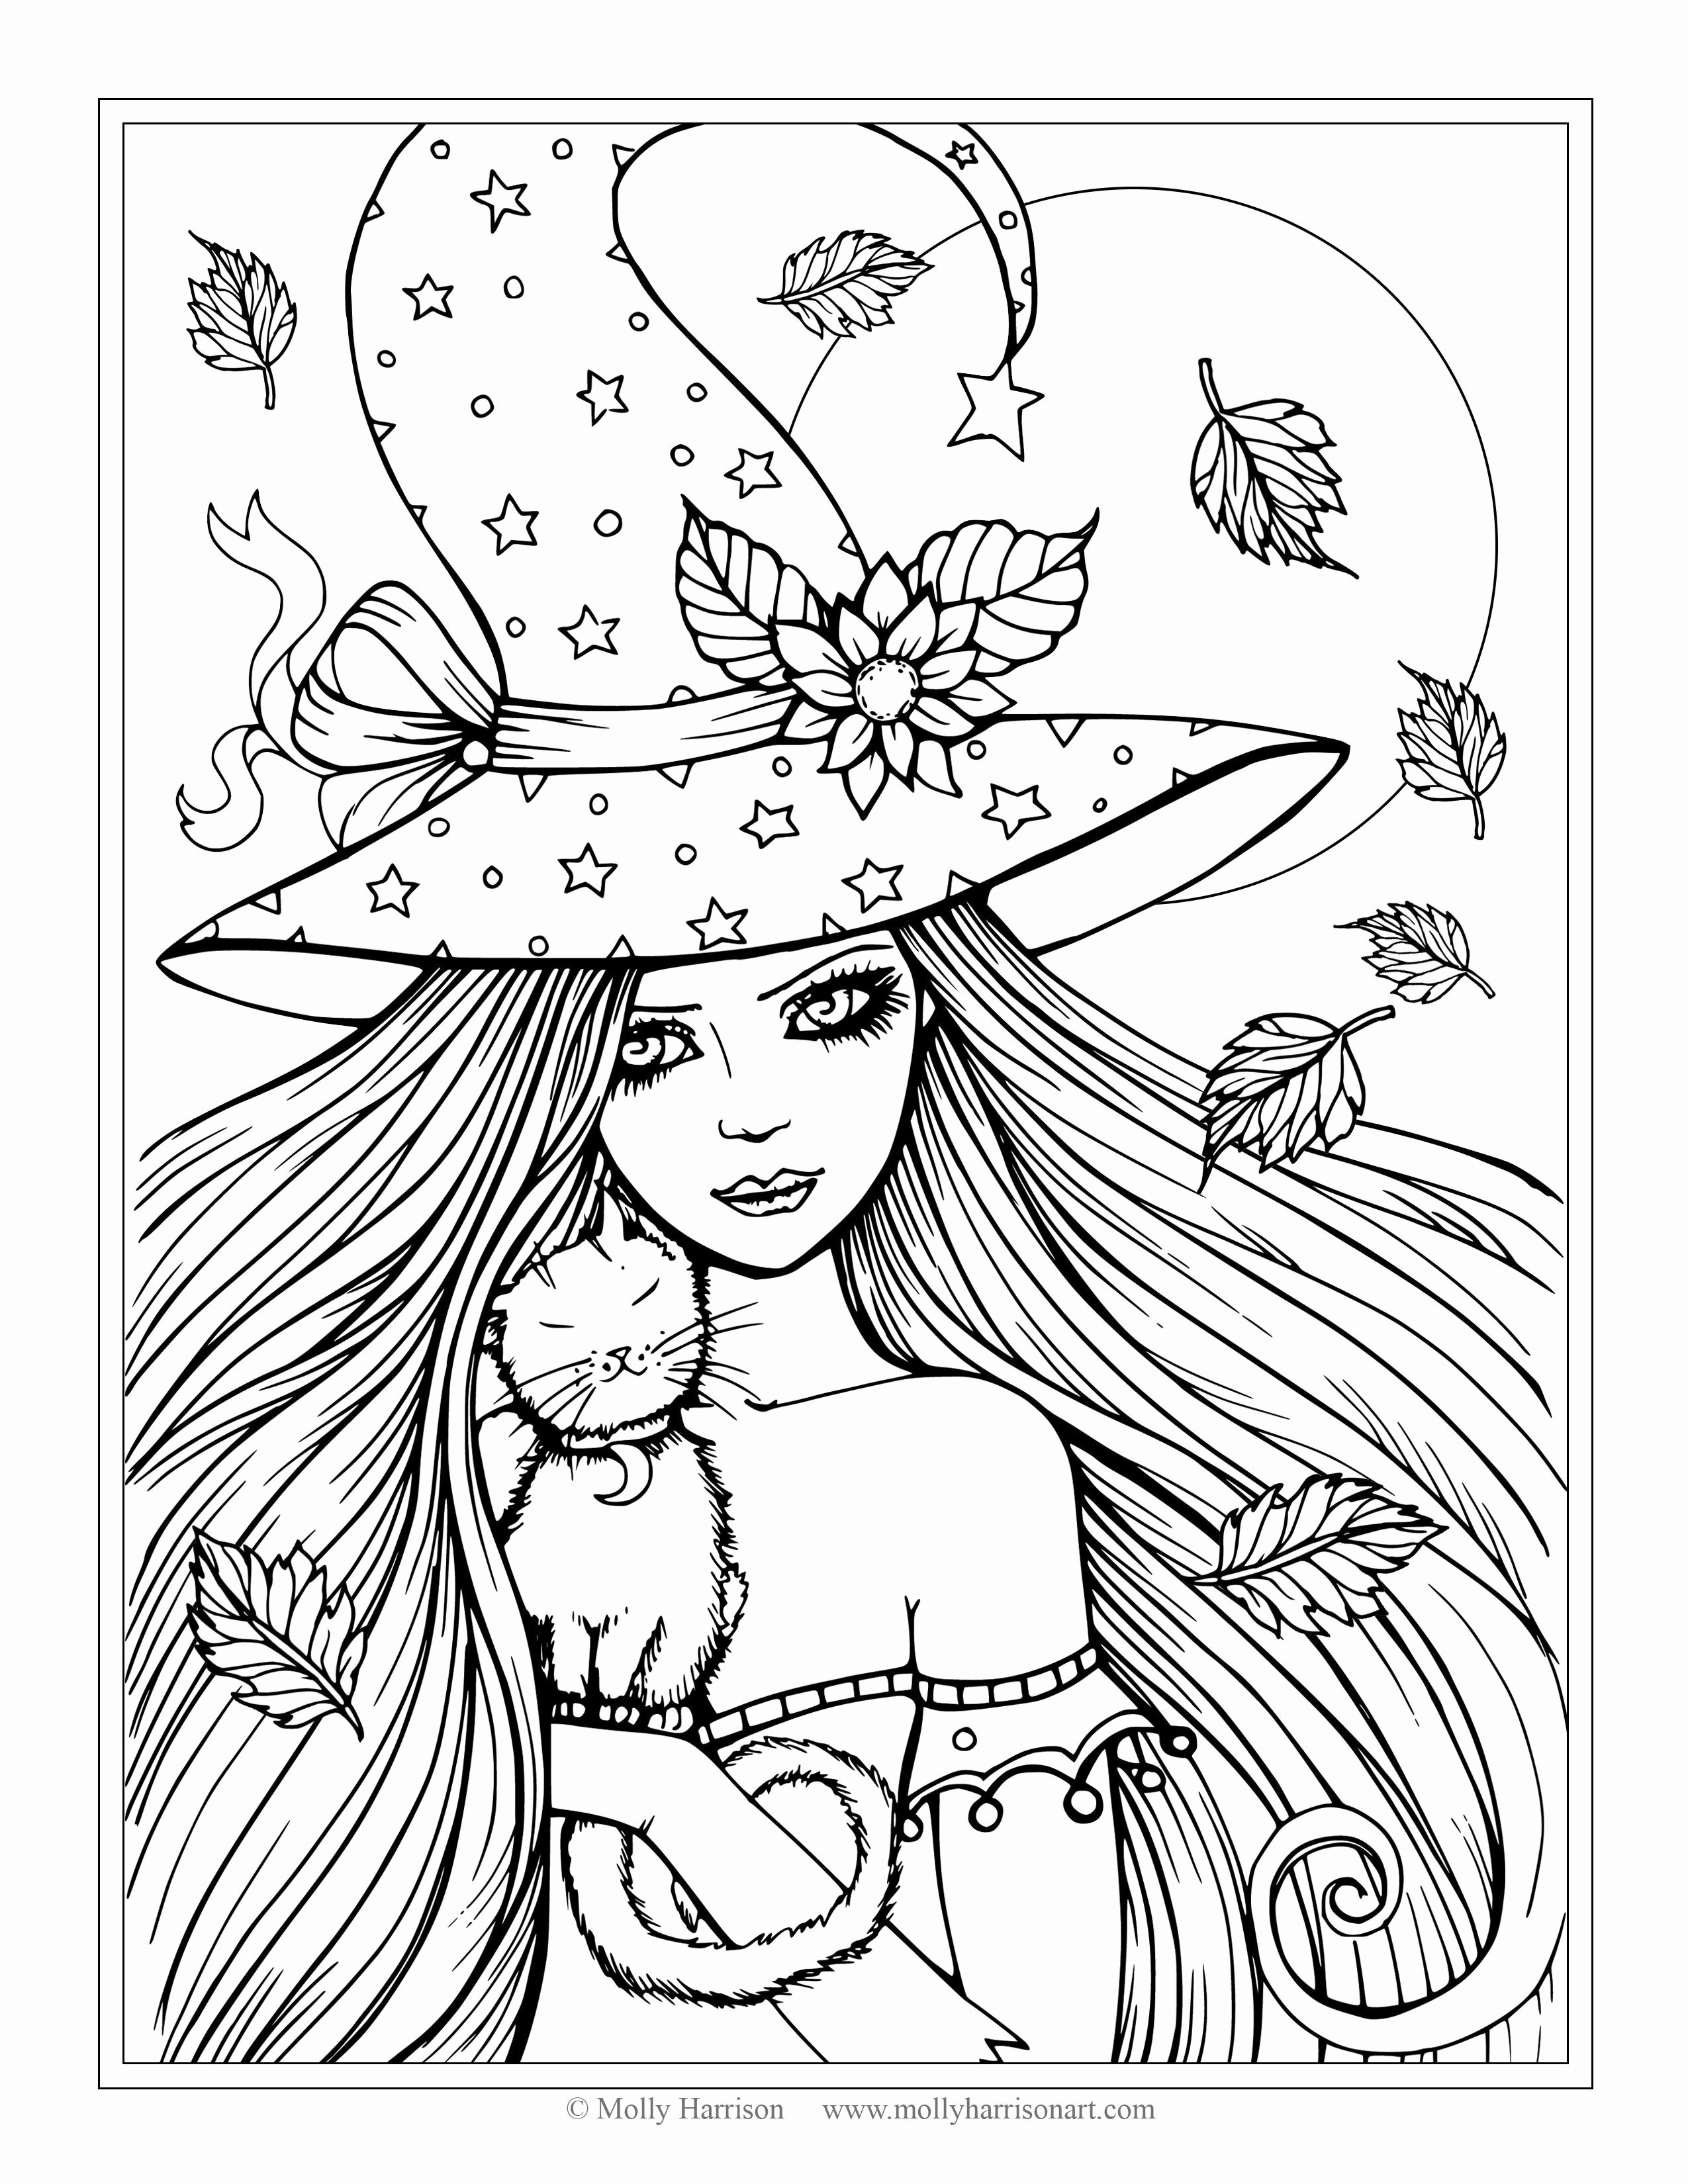 Free Summer Coloring Pages Free Printable Summer Coloring Pages For Adults  Print Free Summer - birijus.com